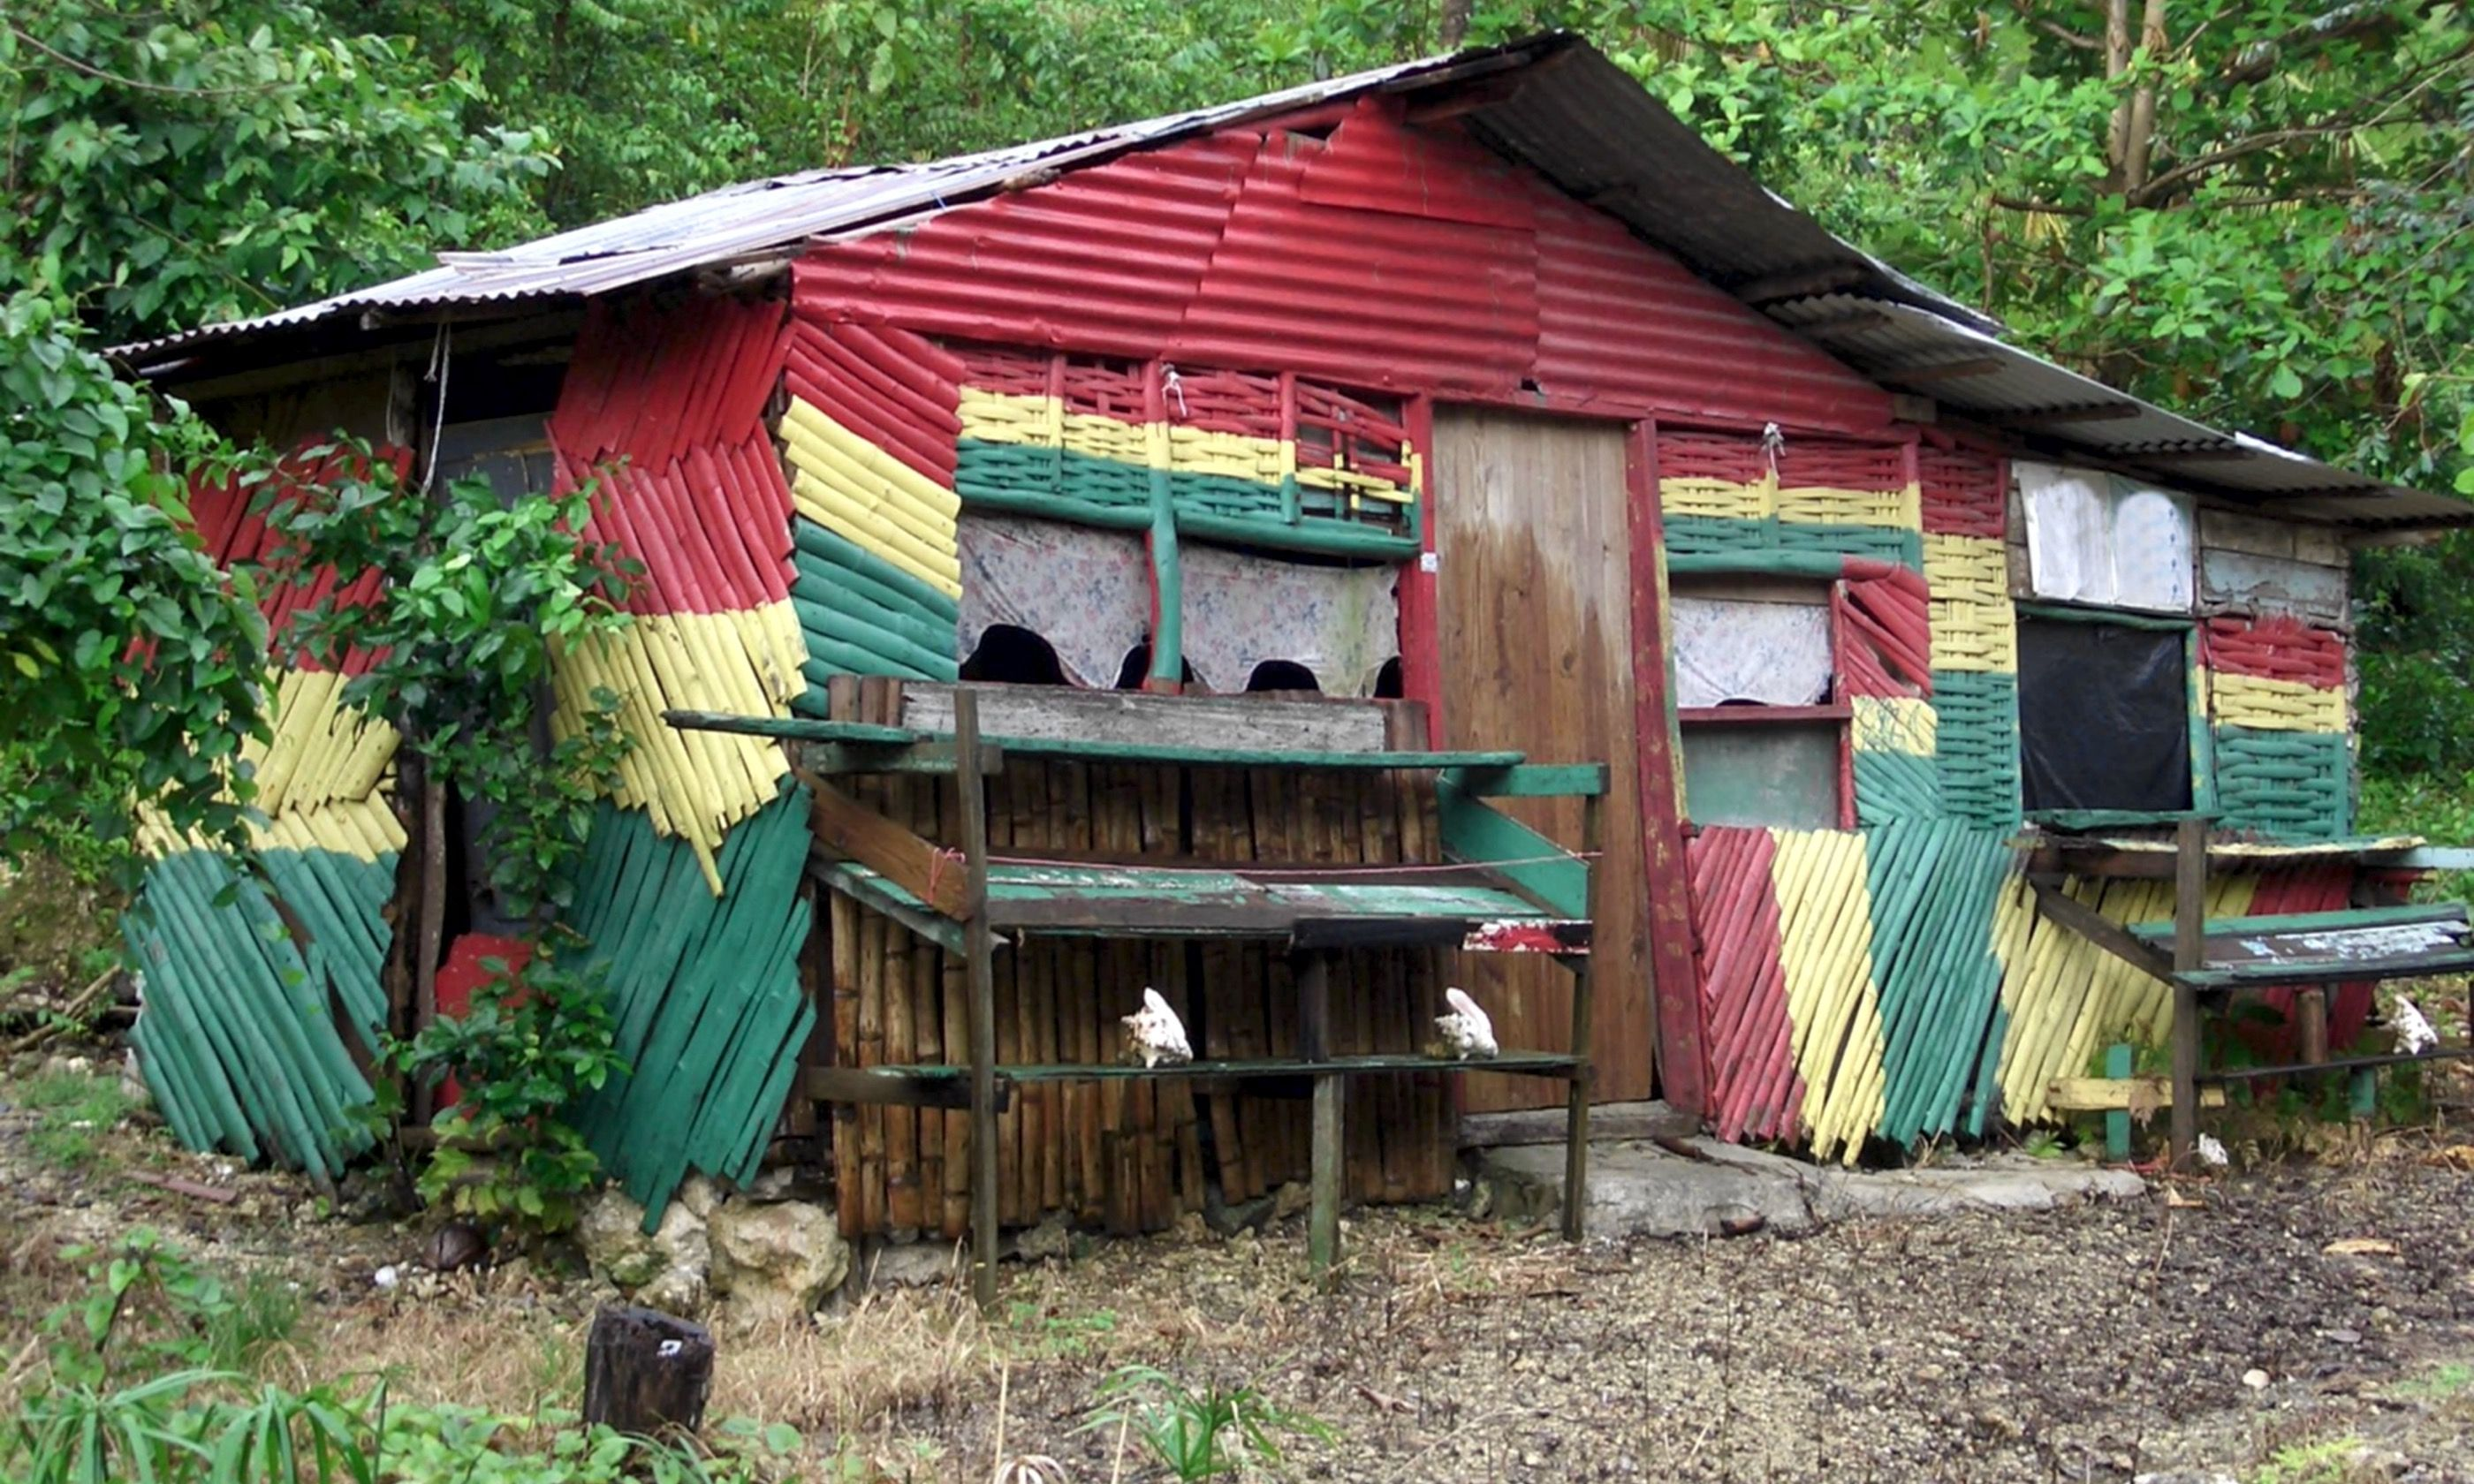 Rustic dwelling in the hills of Jamaica (Dreamstime)